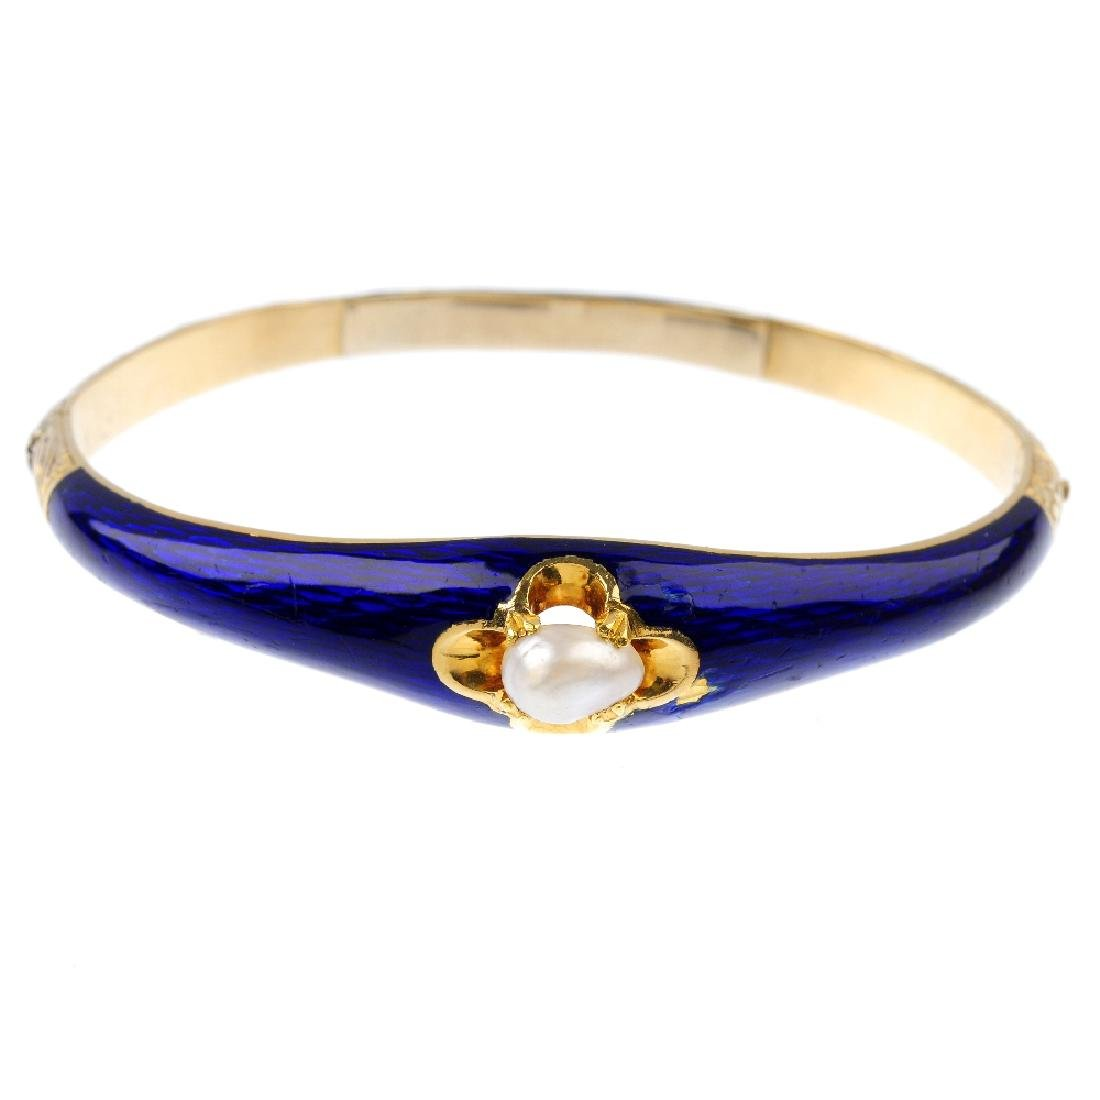 An enamel and cultured pearl hinged bangle. The baroque